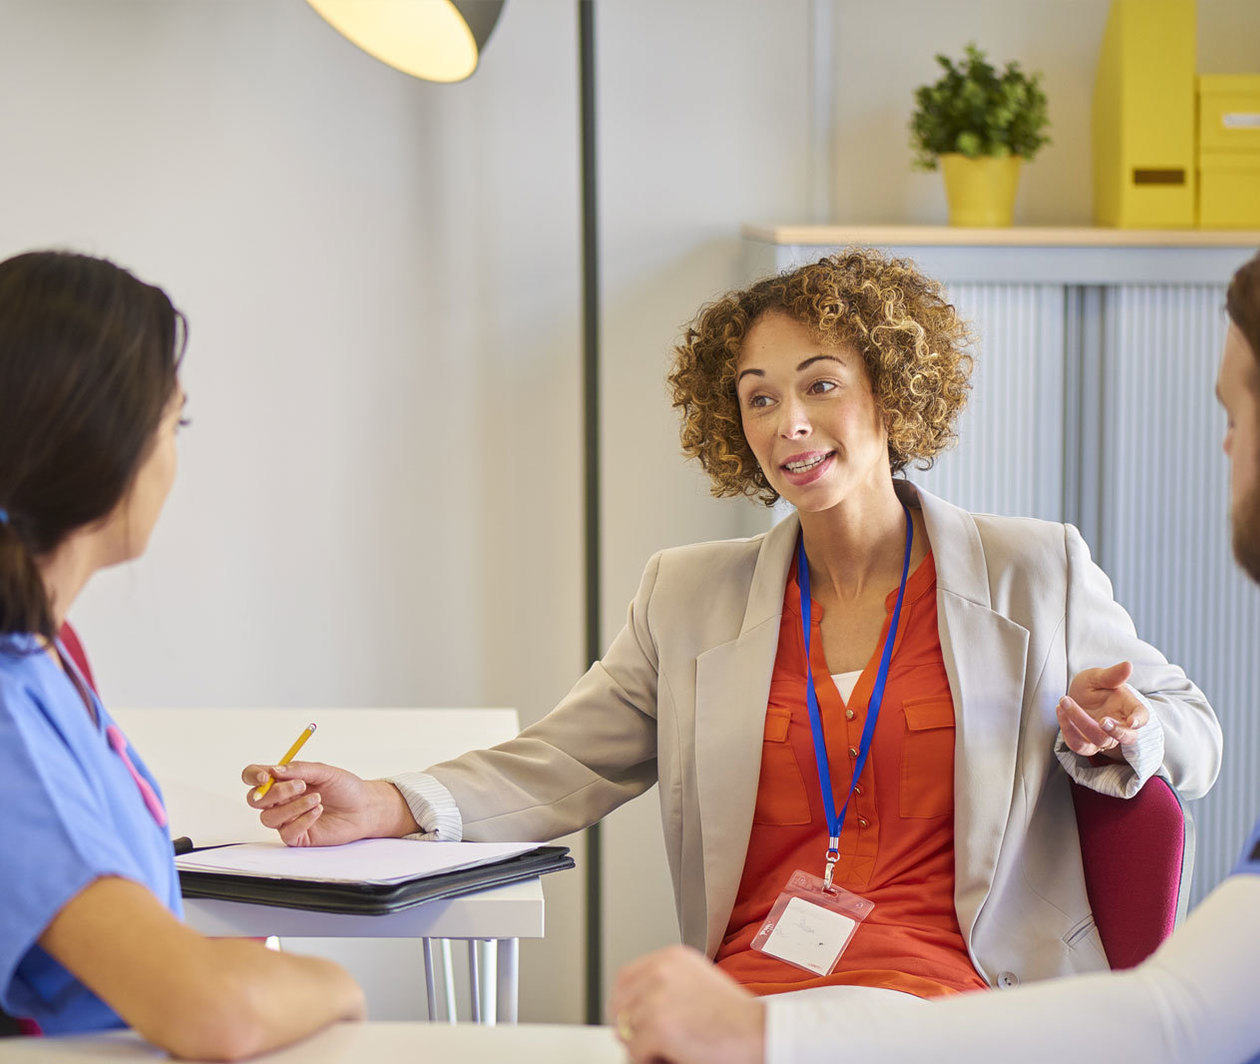 Managing Change in a Healthcare Environment